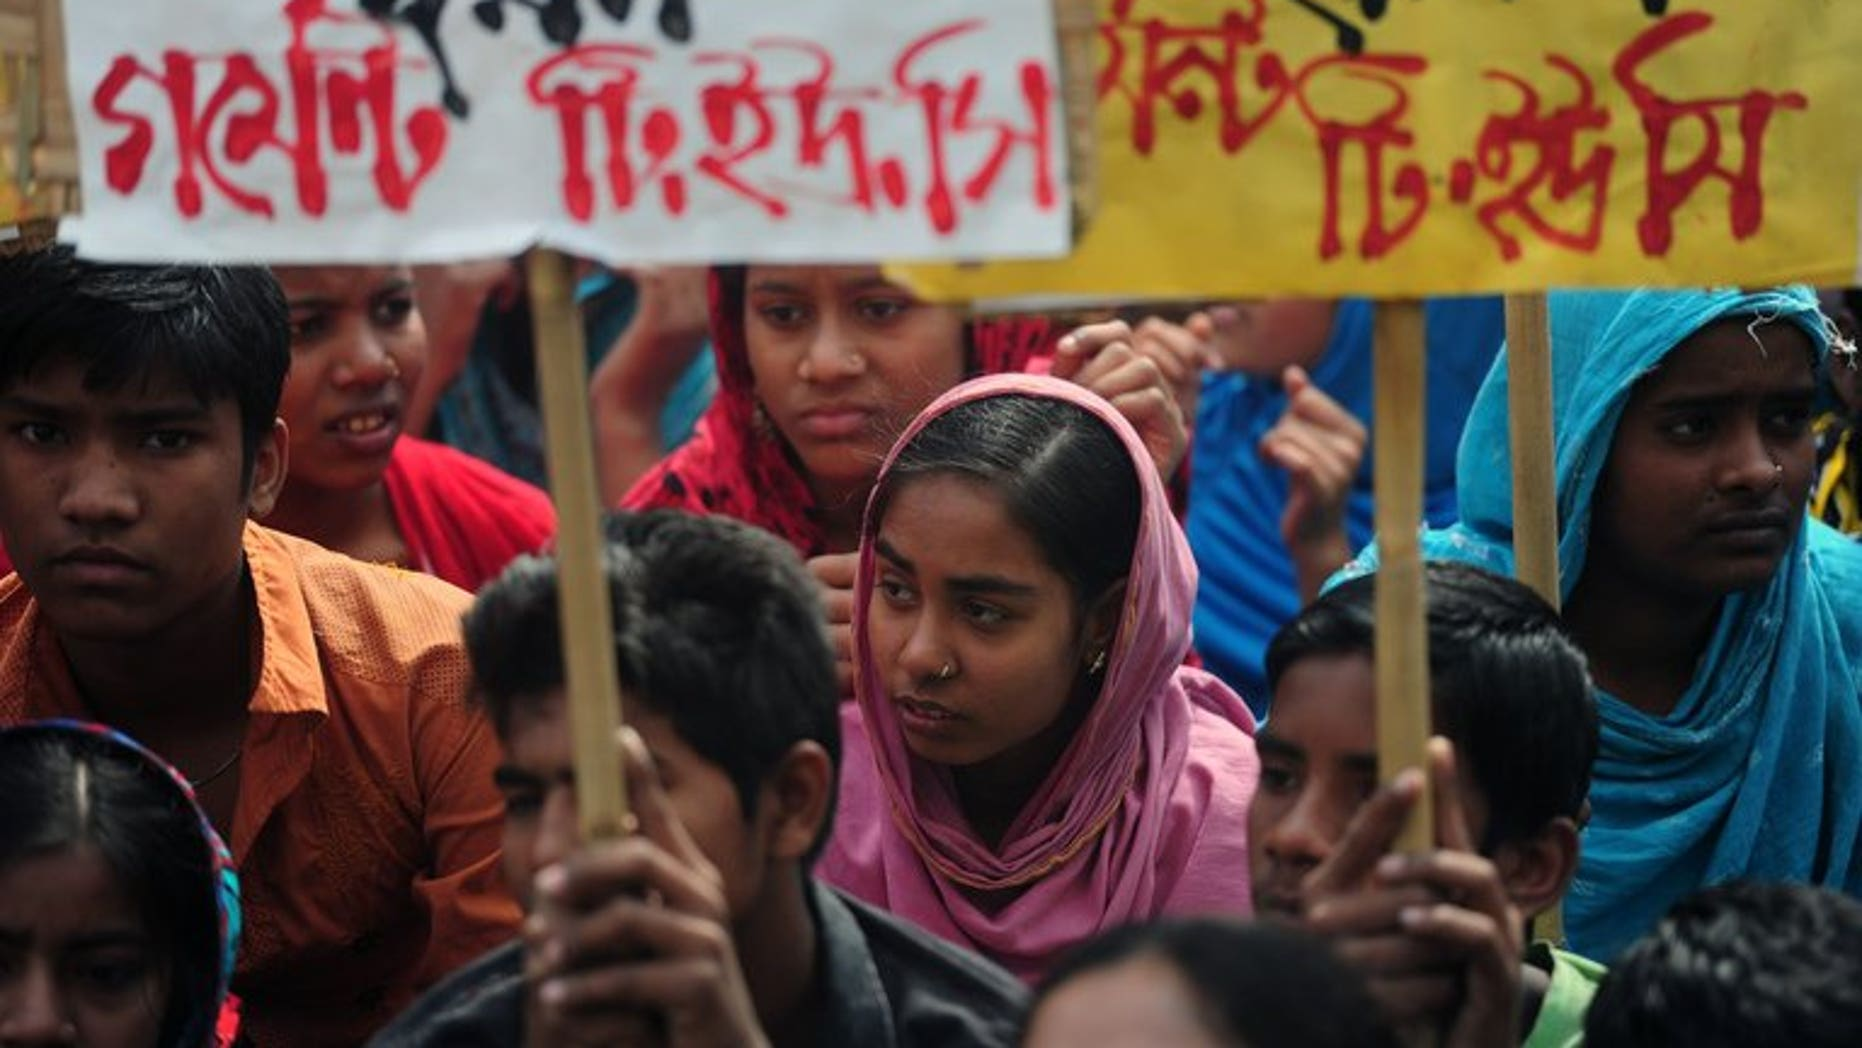 Bangladeshi garments workers and activists stage a protest in front of the Bangladesh Garment Manufactures & Exporters Association (BGMEA) office in Dhaka on January 28, 2013. Bangladesh has decided to review already announced labour law reforms after the United States last week cut its trade privileges over a deadly garment factory collapse, officials said Wednesday.